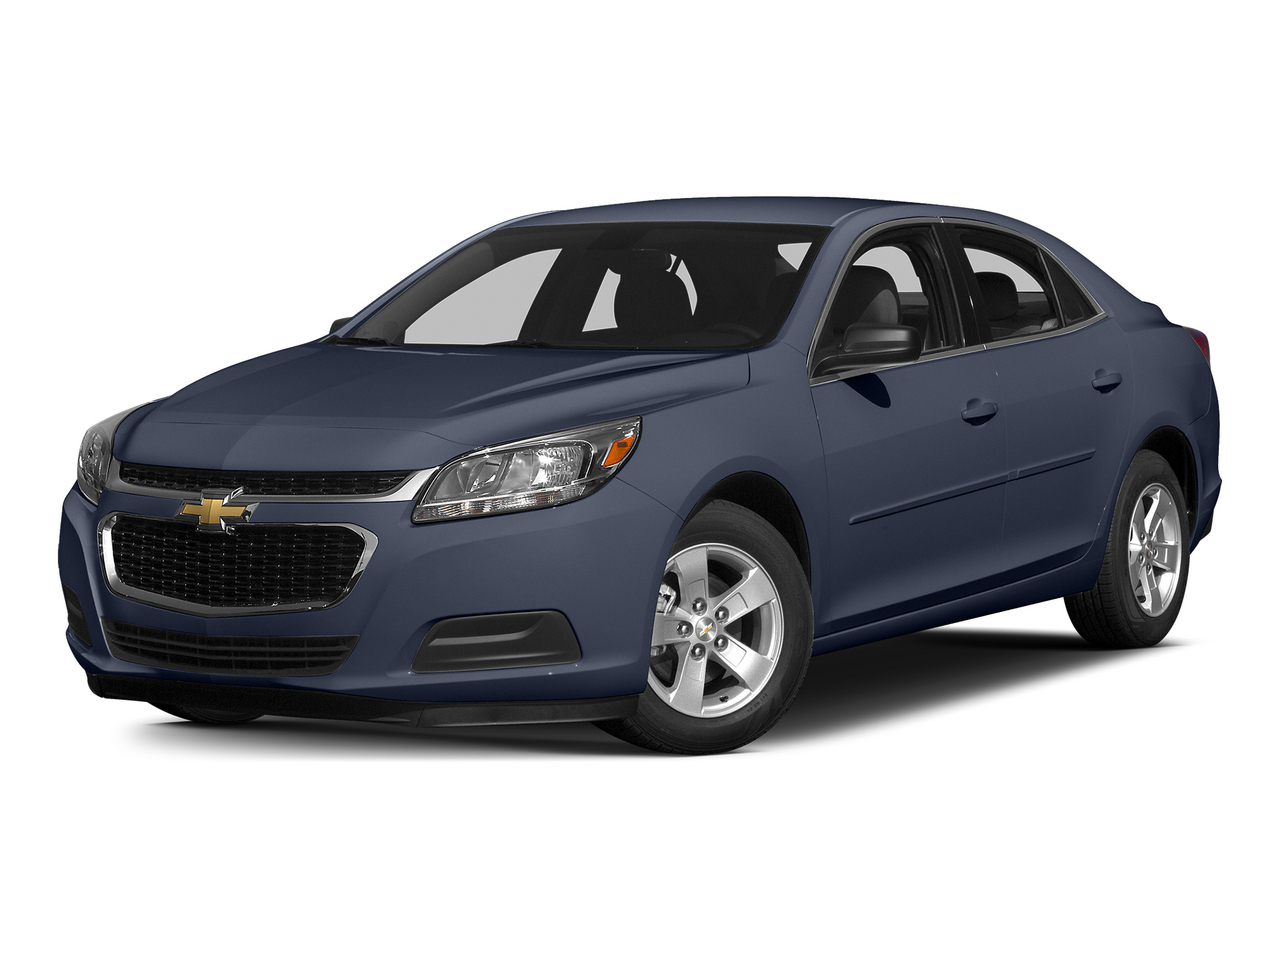 2015 Chevrolet Malibu LT 4dr Car Slide